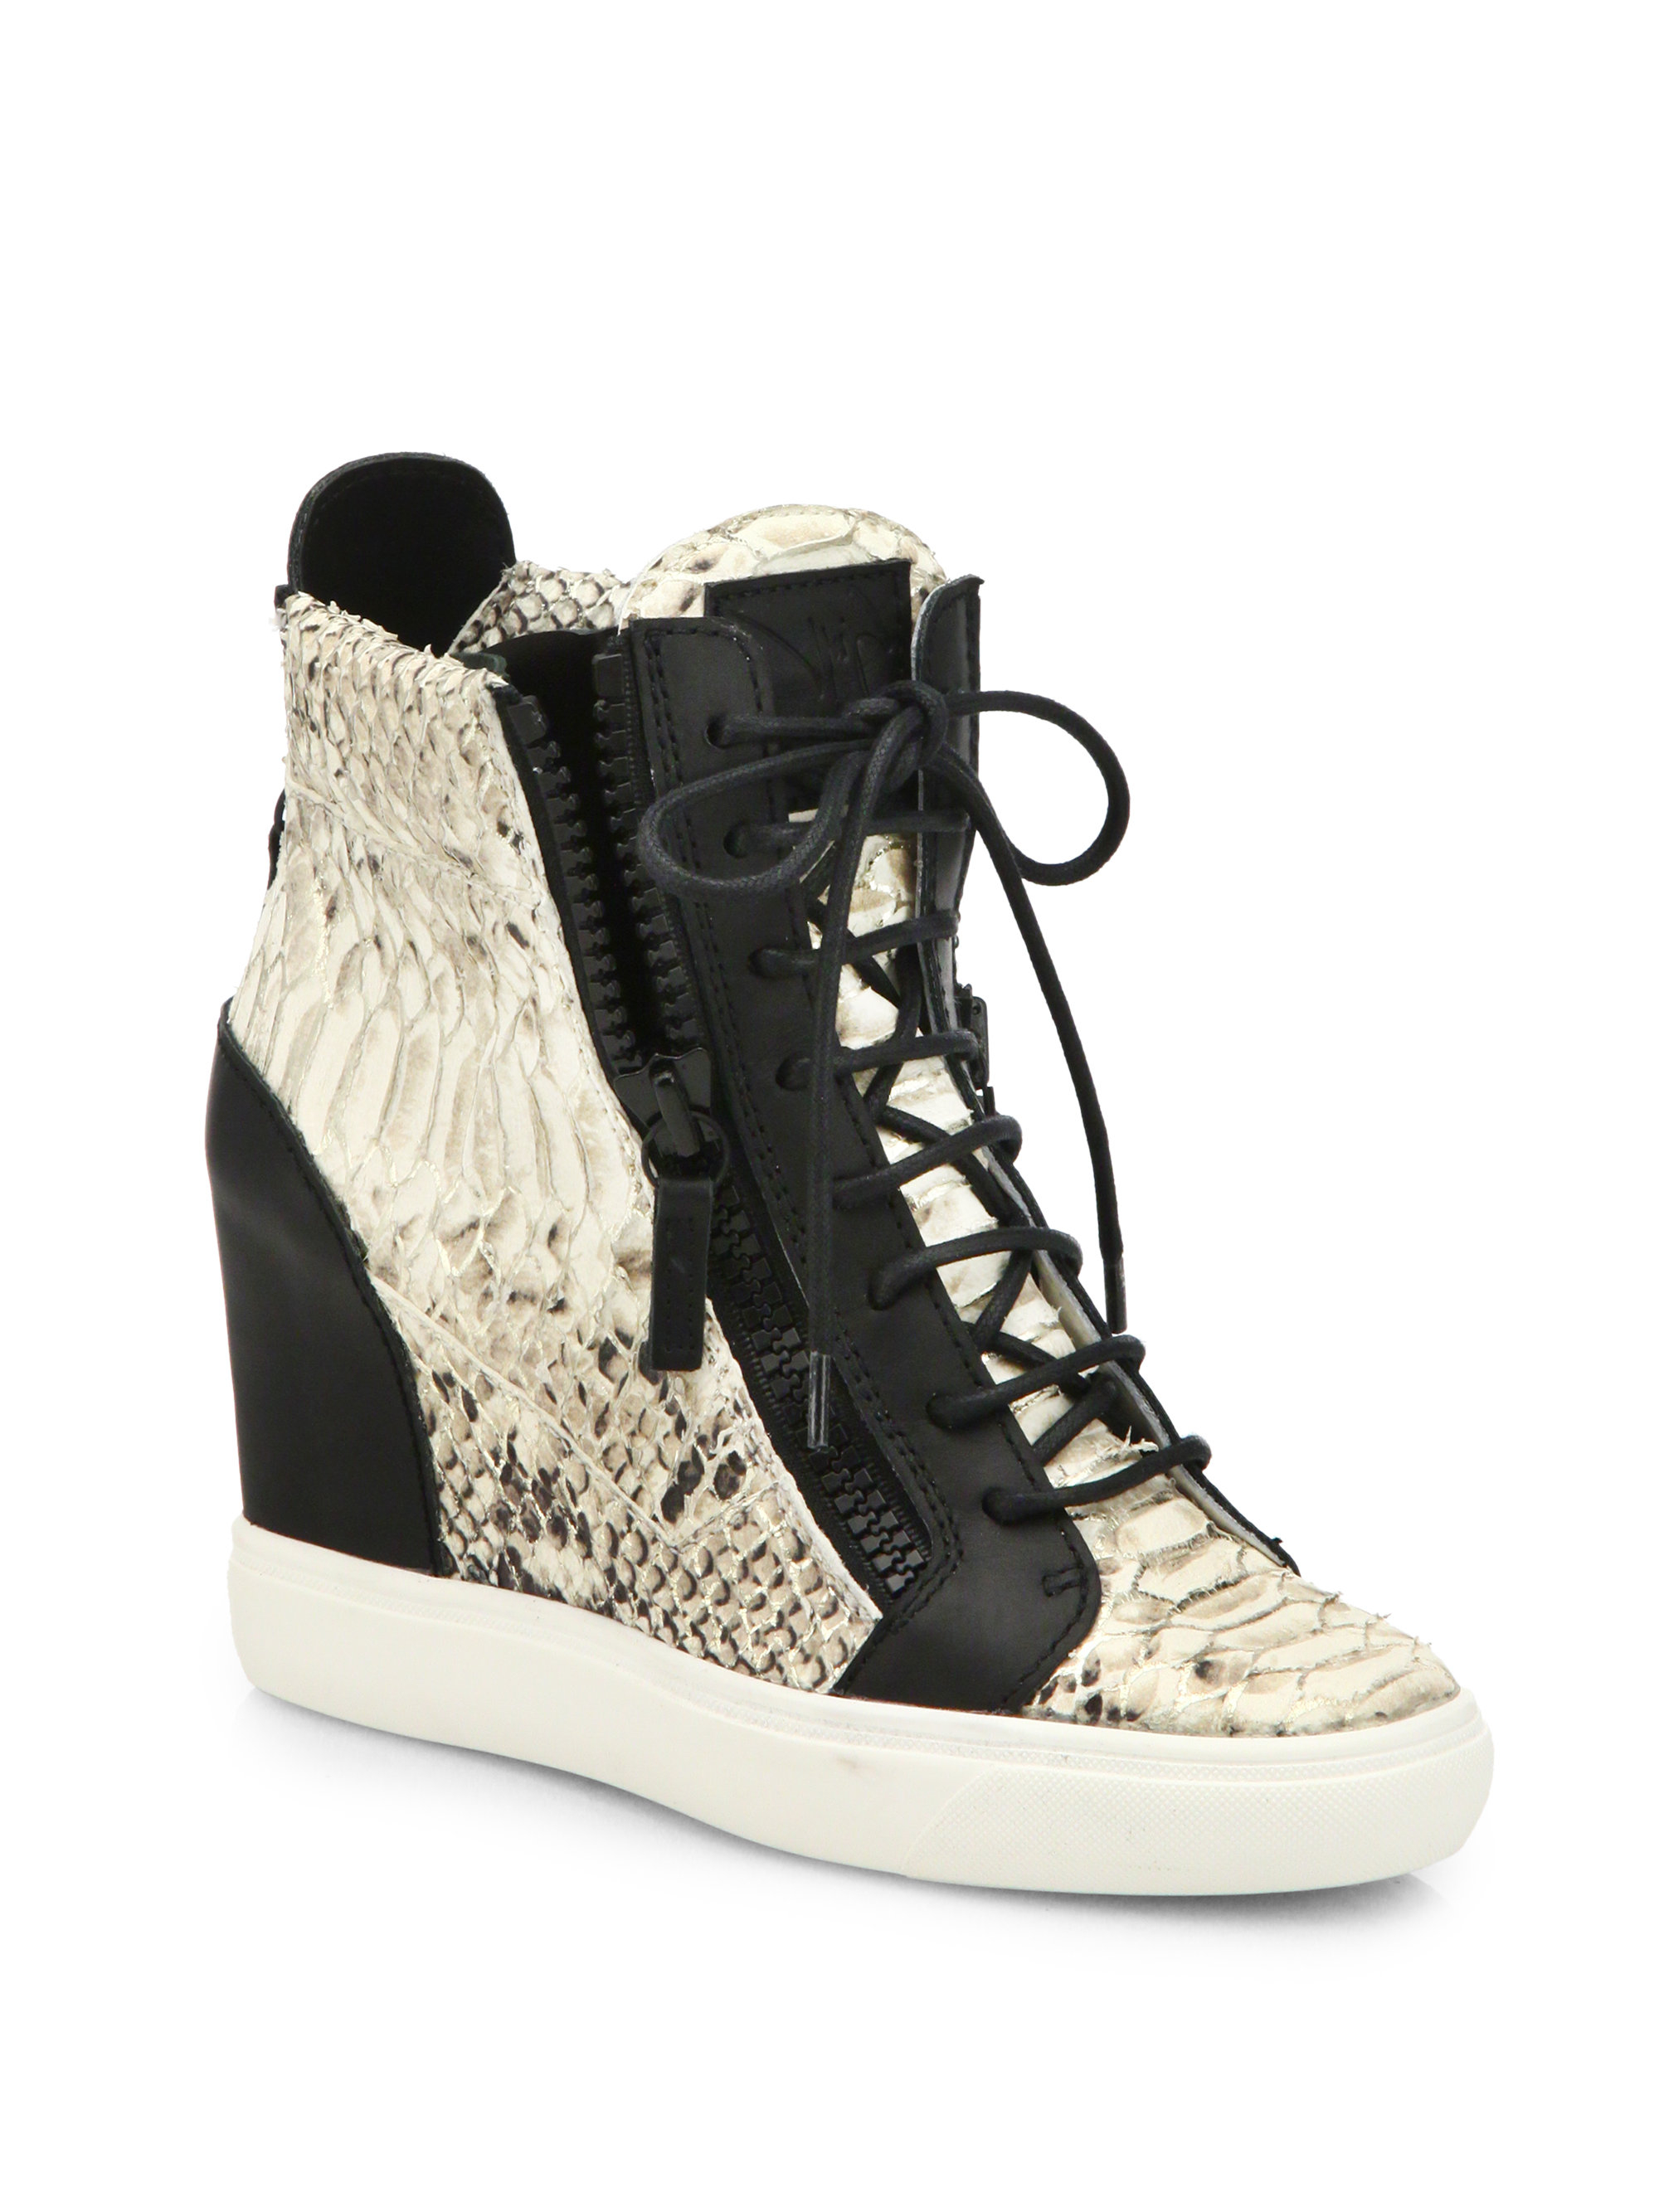 lyst giuseppe zanotti python leather wedge sneakers in black rh lyst com